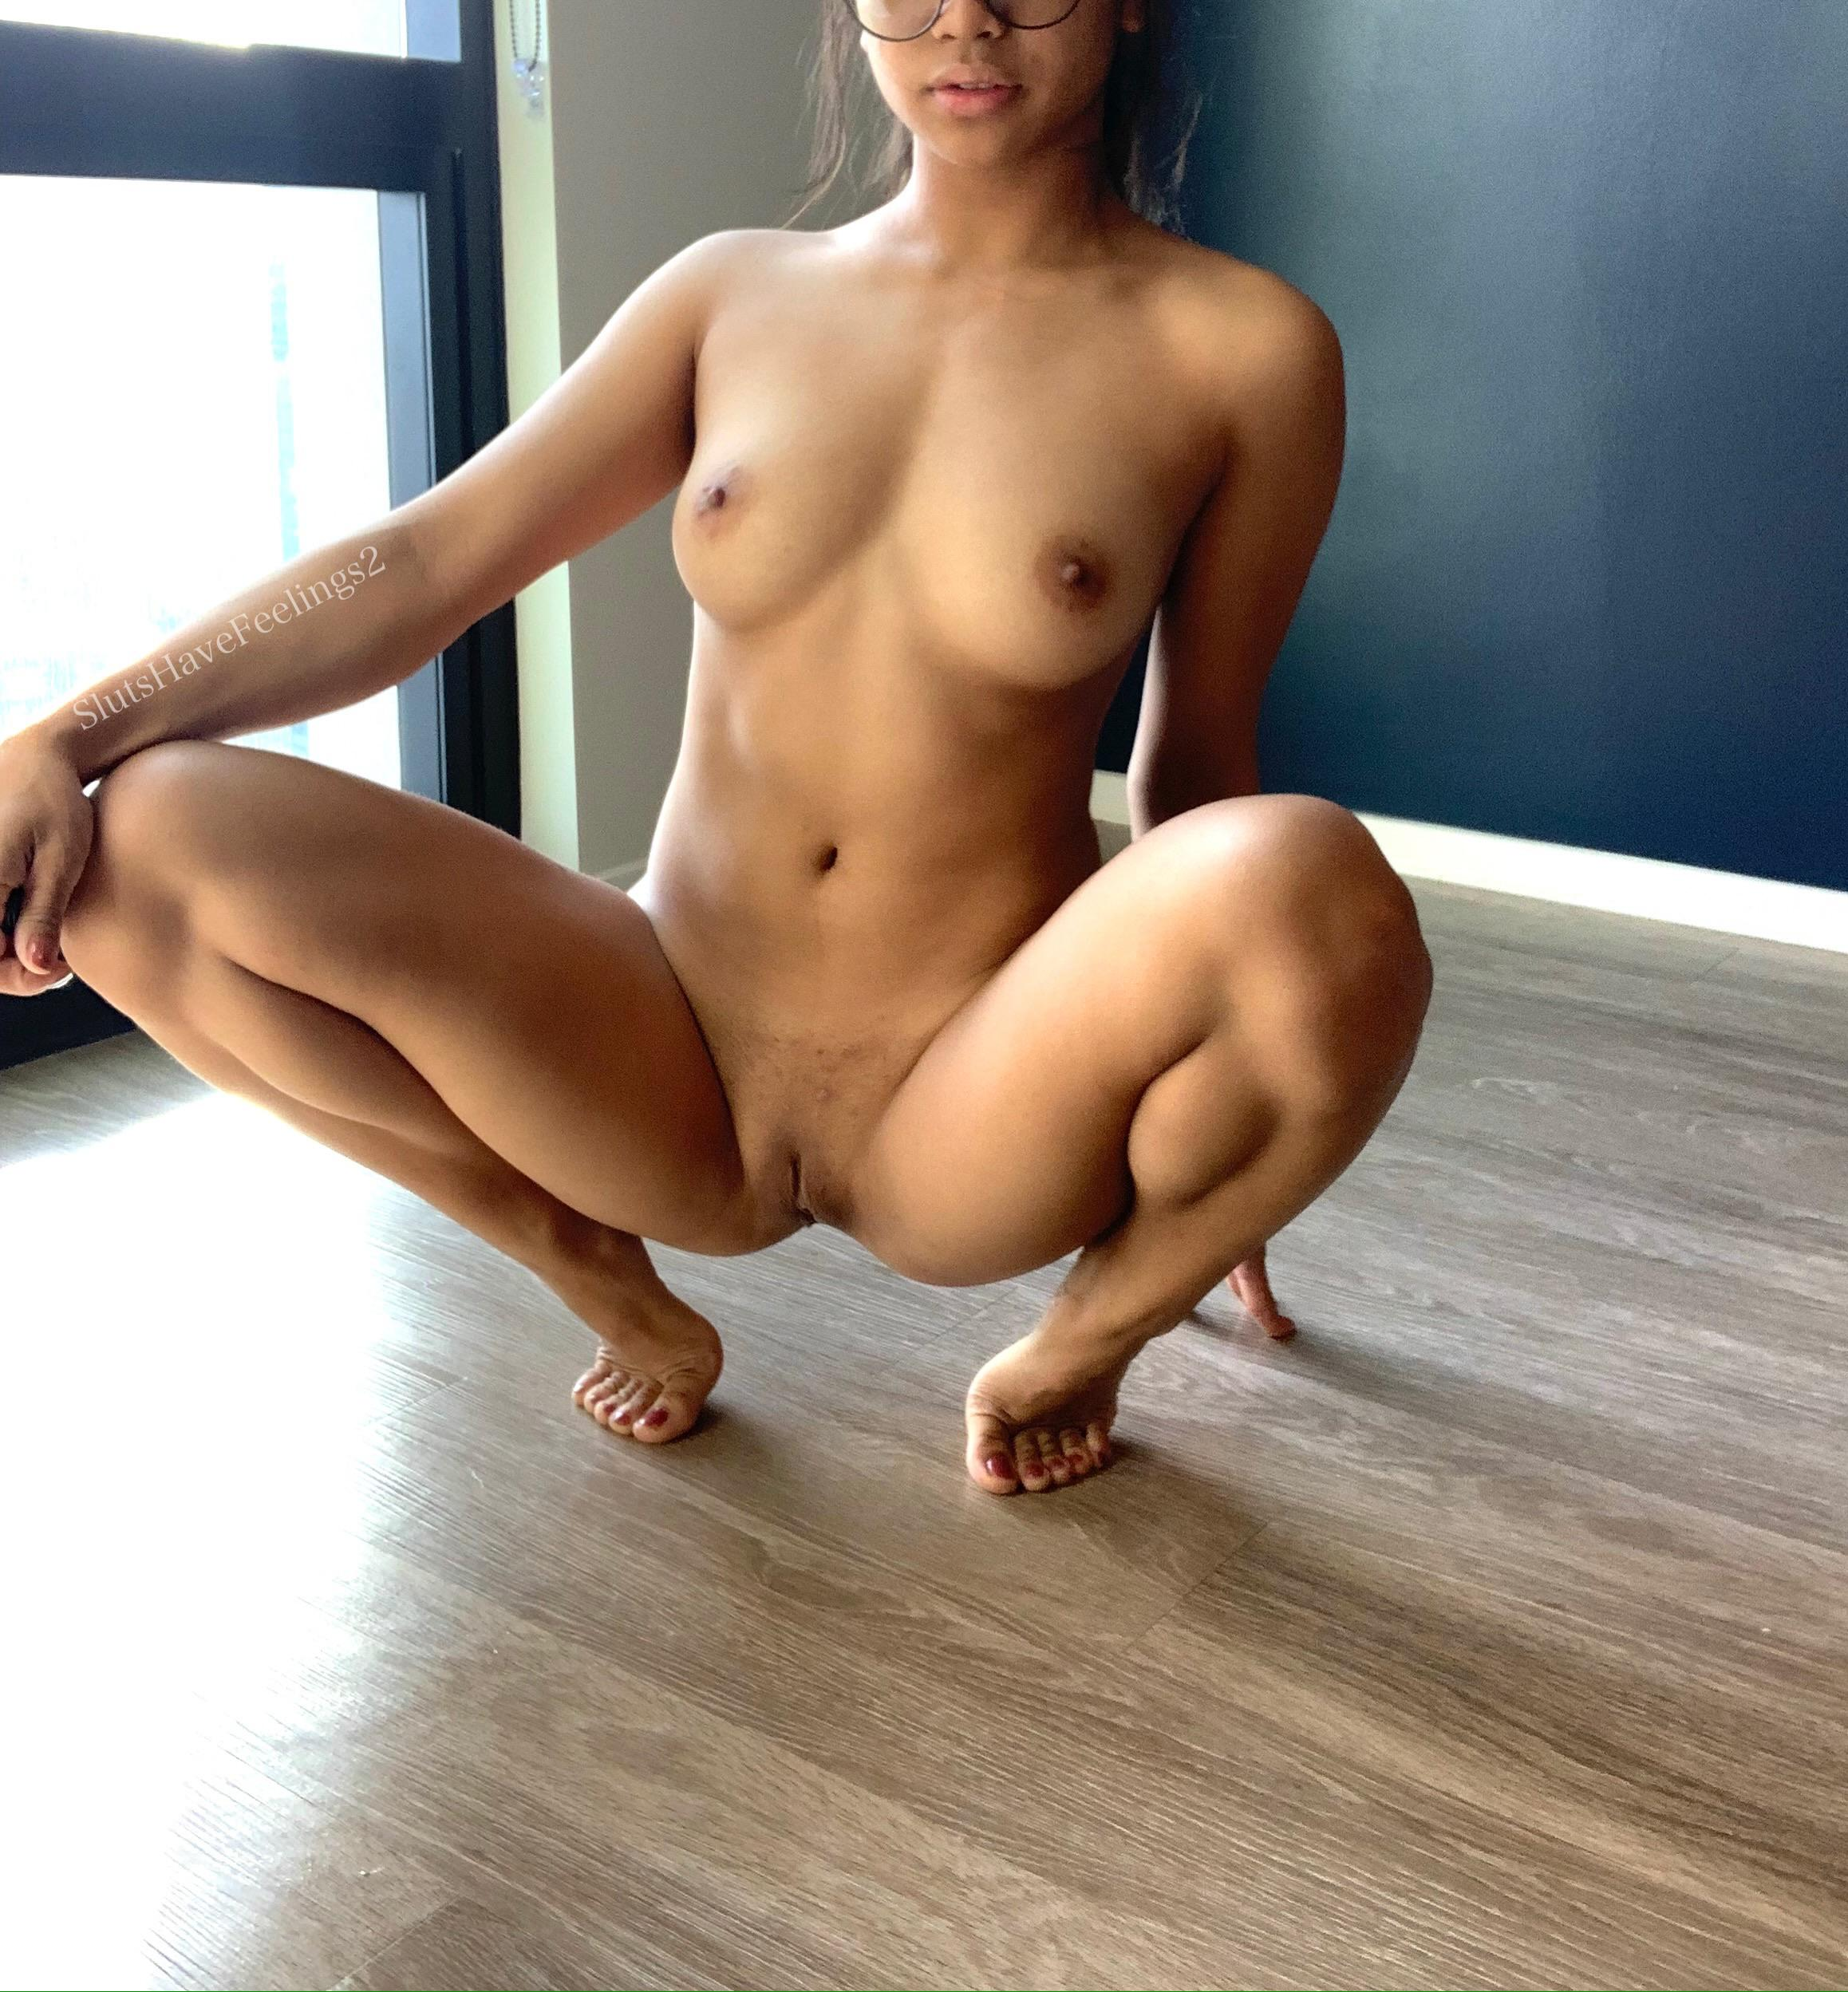 Naked Girls Squatting